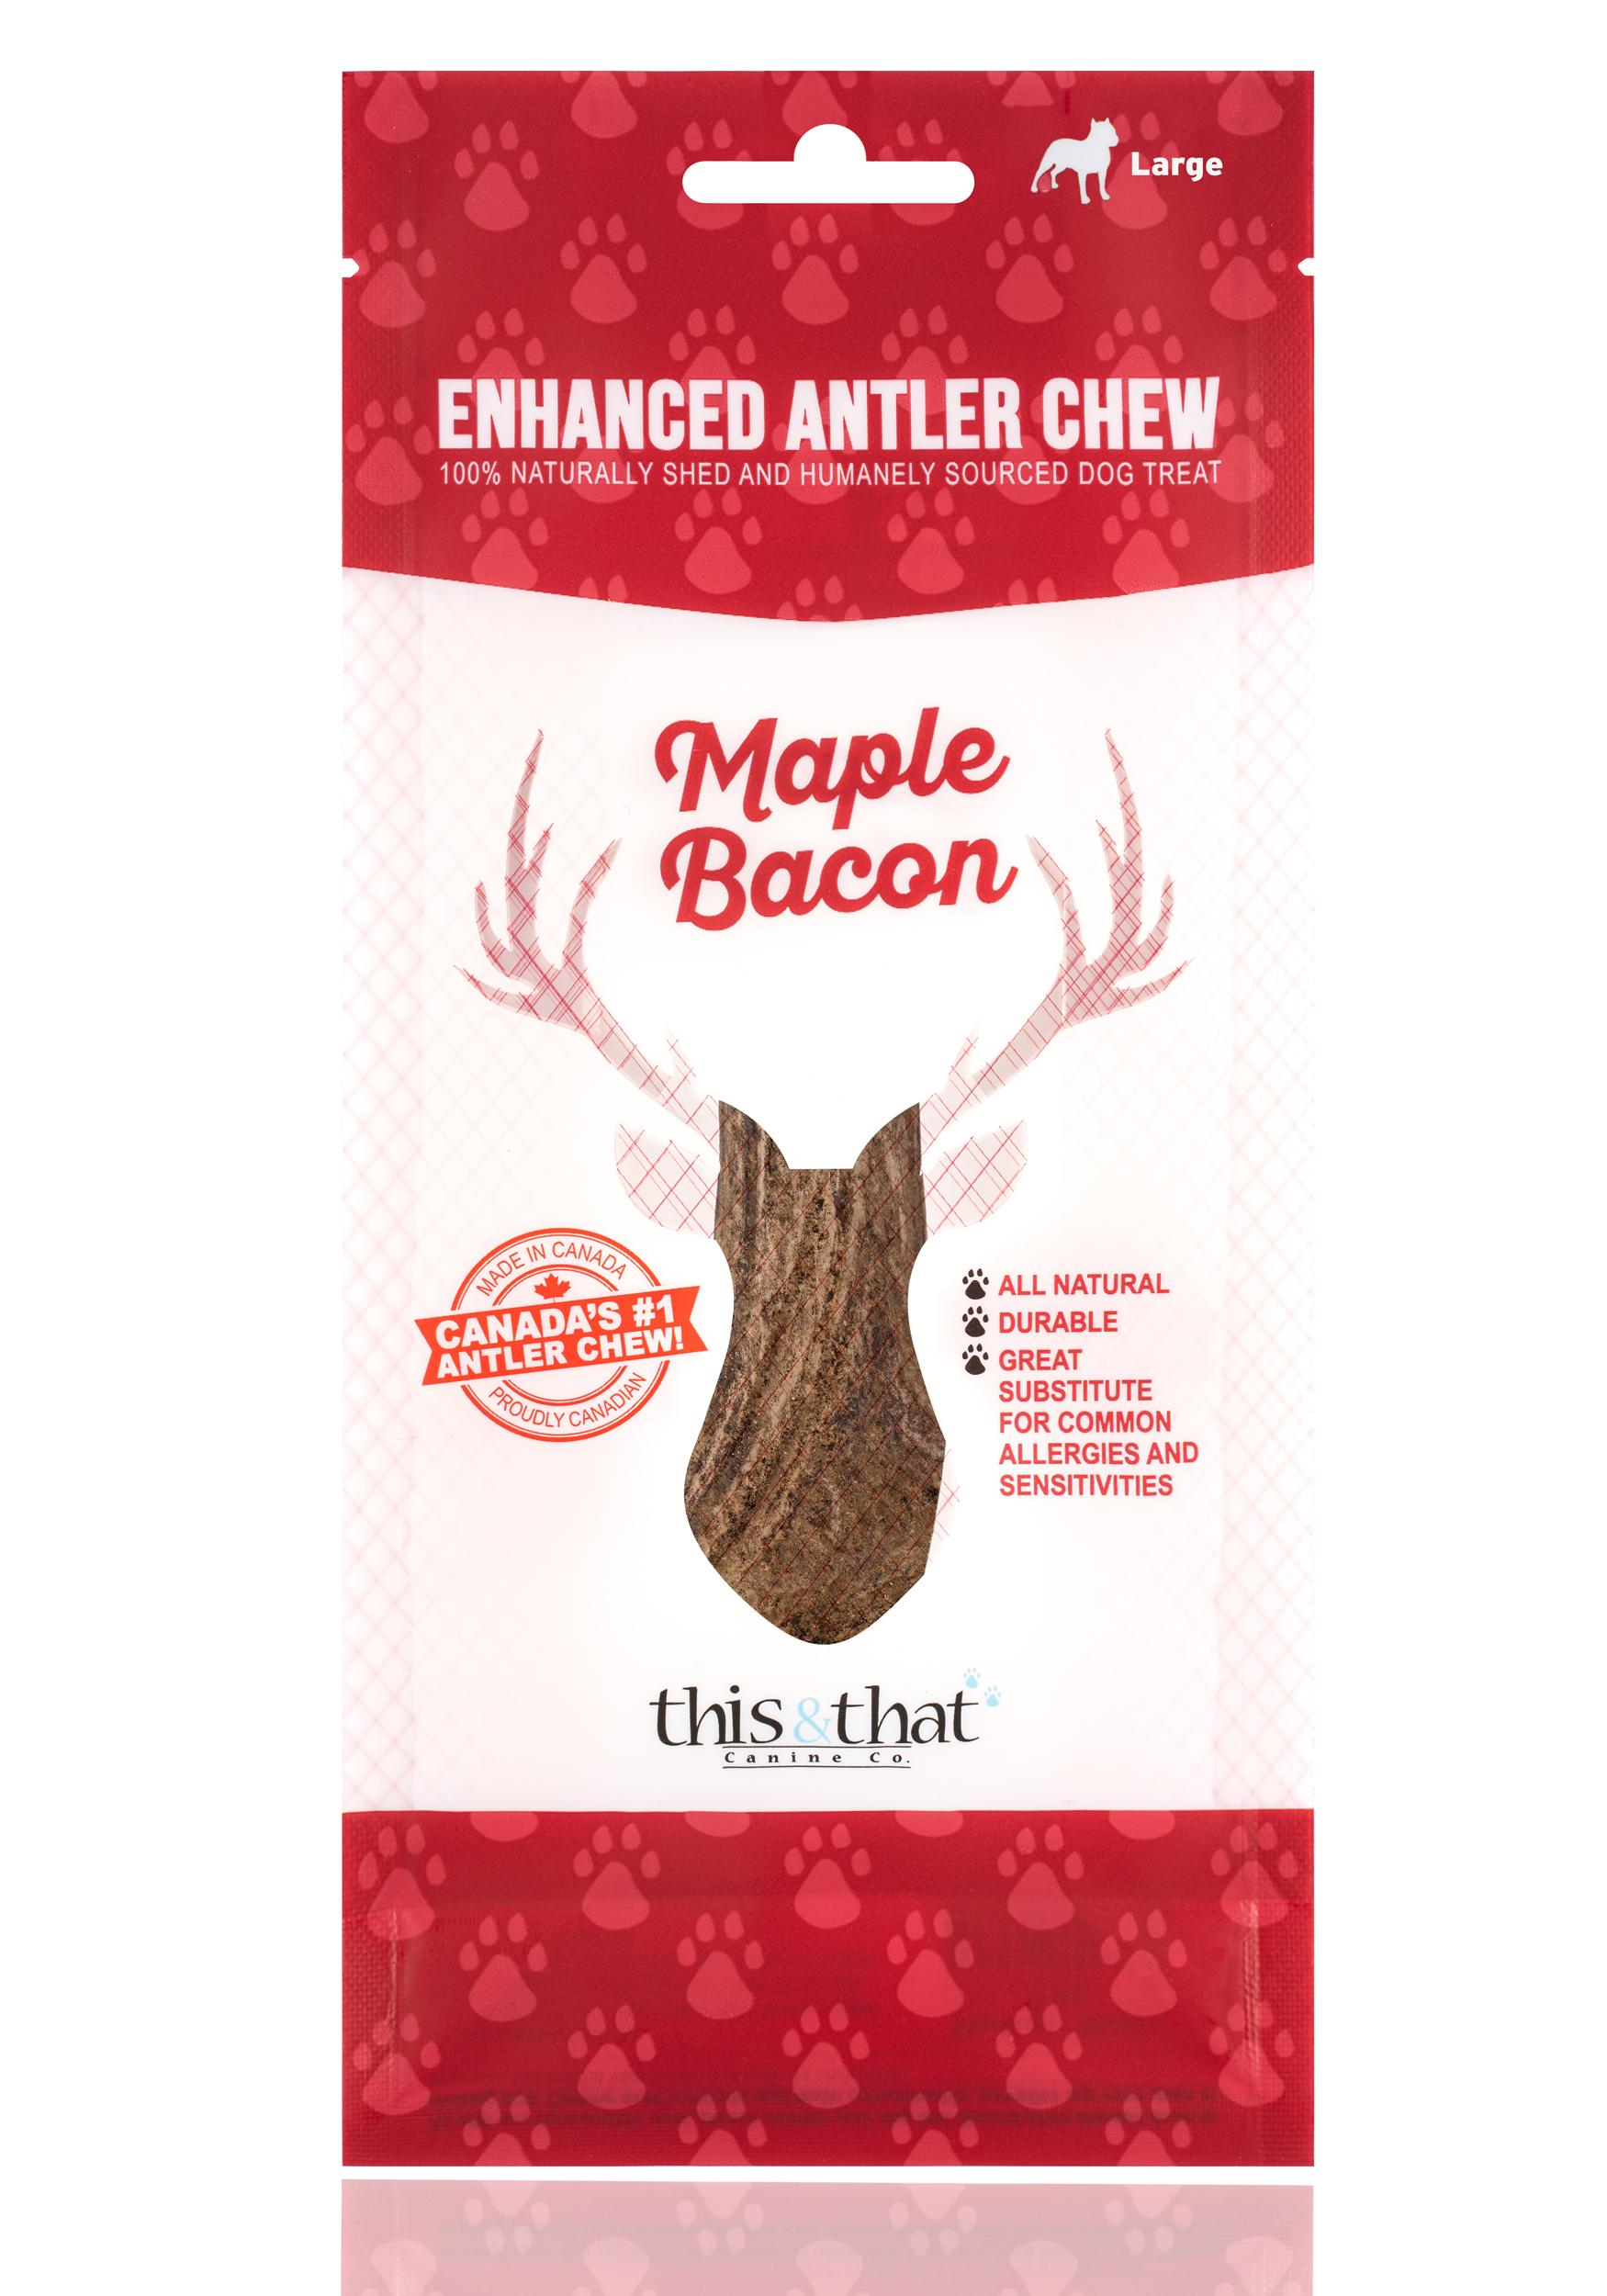 This & That Maple Bacon Enhanced Antler Chew Dog Treats, Large